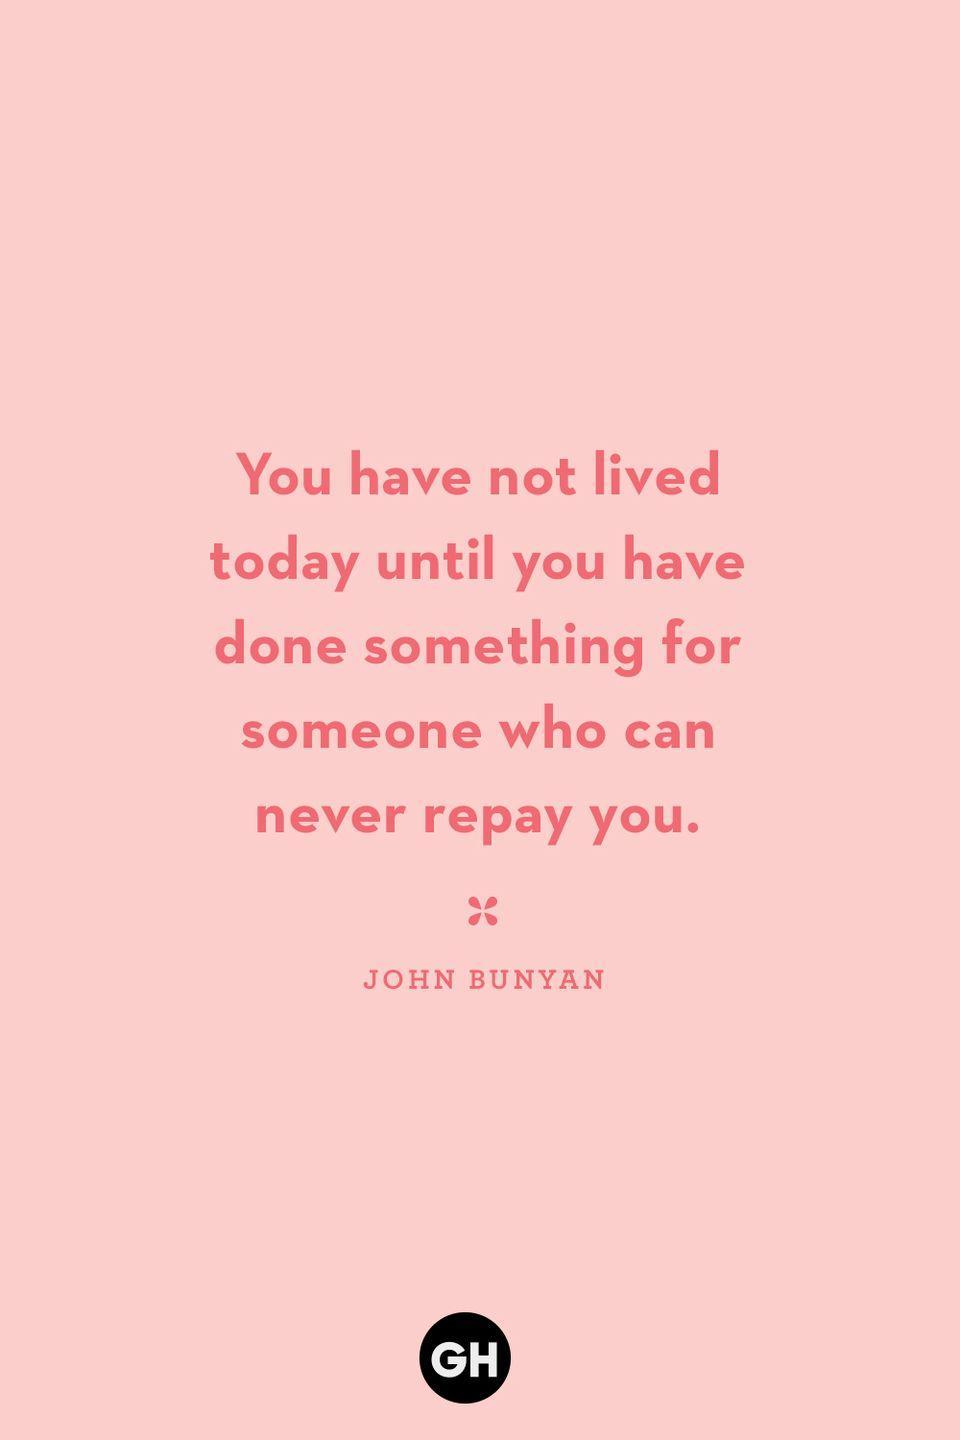 <p>You have not lived today until you have done something for someone who can never repay you.</p>